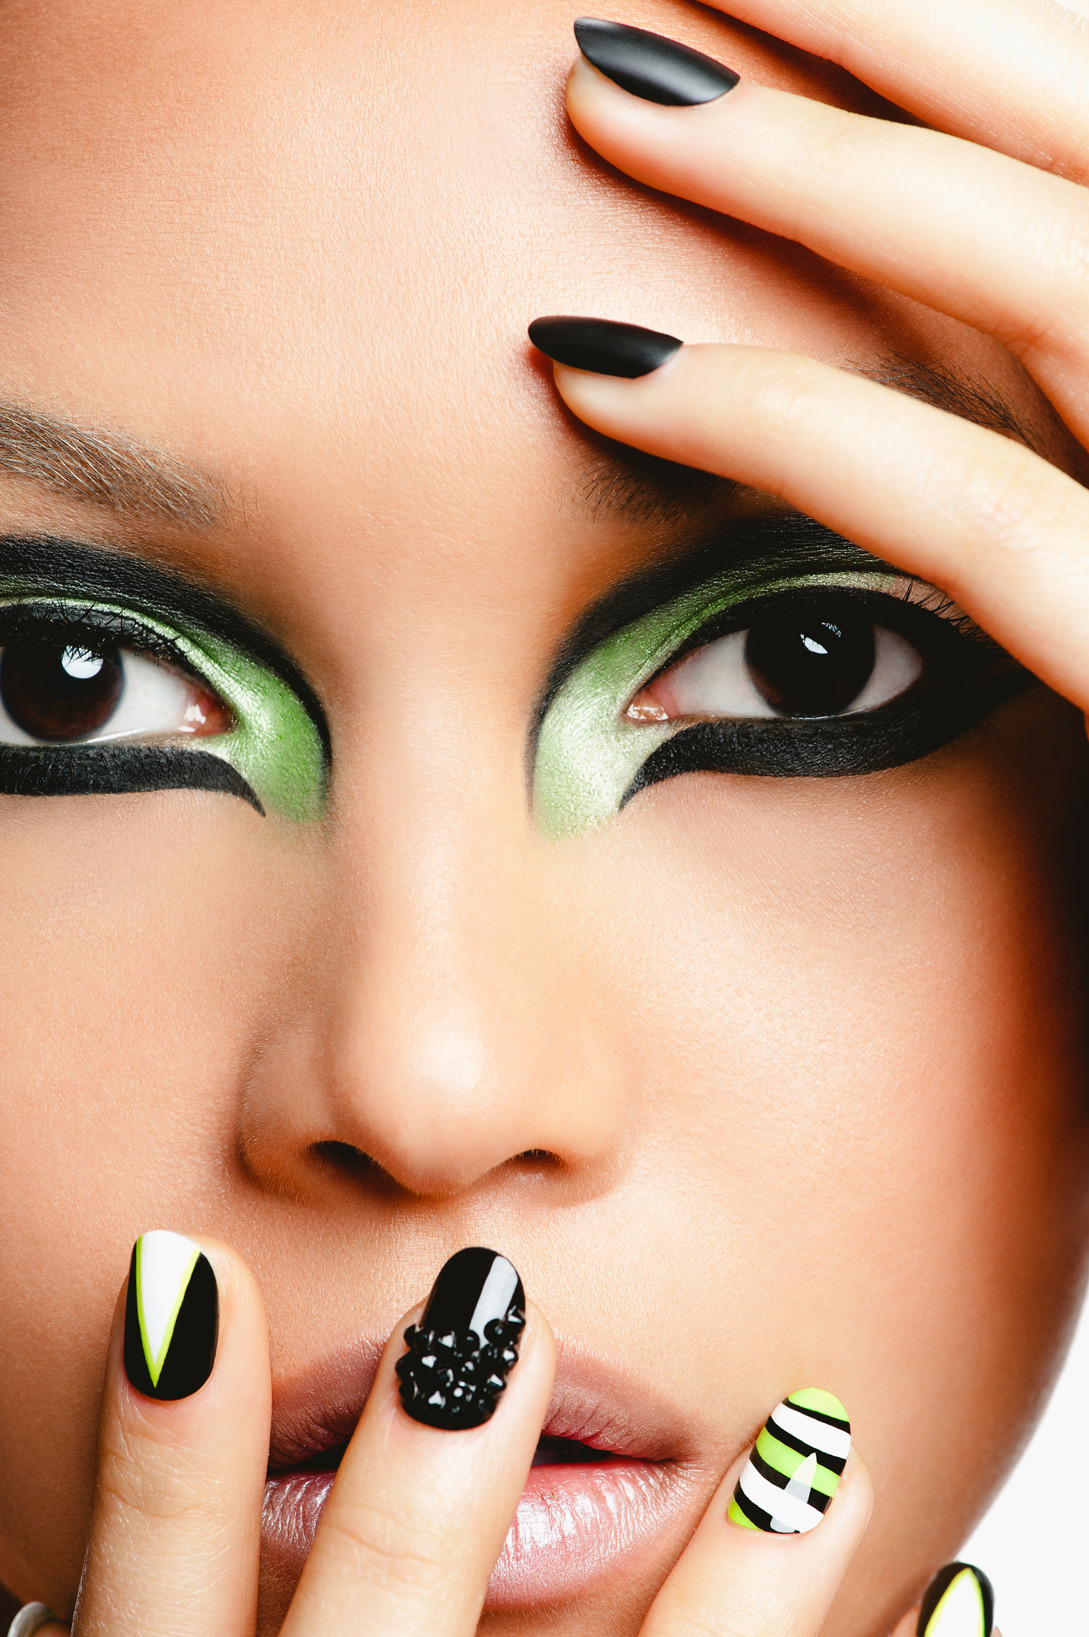 nailsbyran:  Nails by RAN Makeup by Keri b Photographer Adriana Curcio